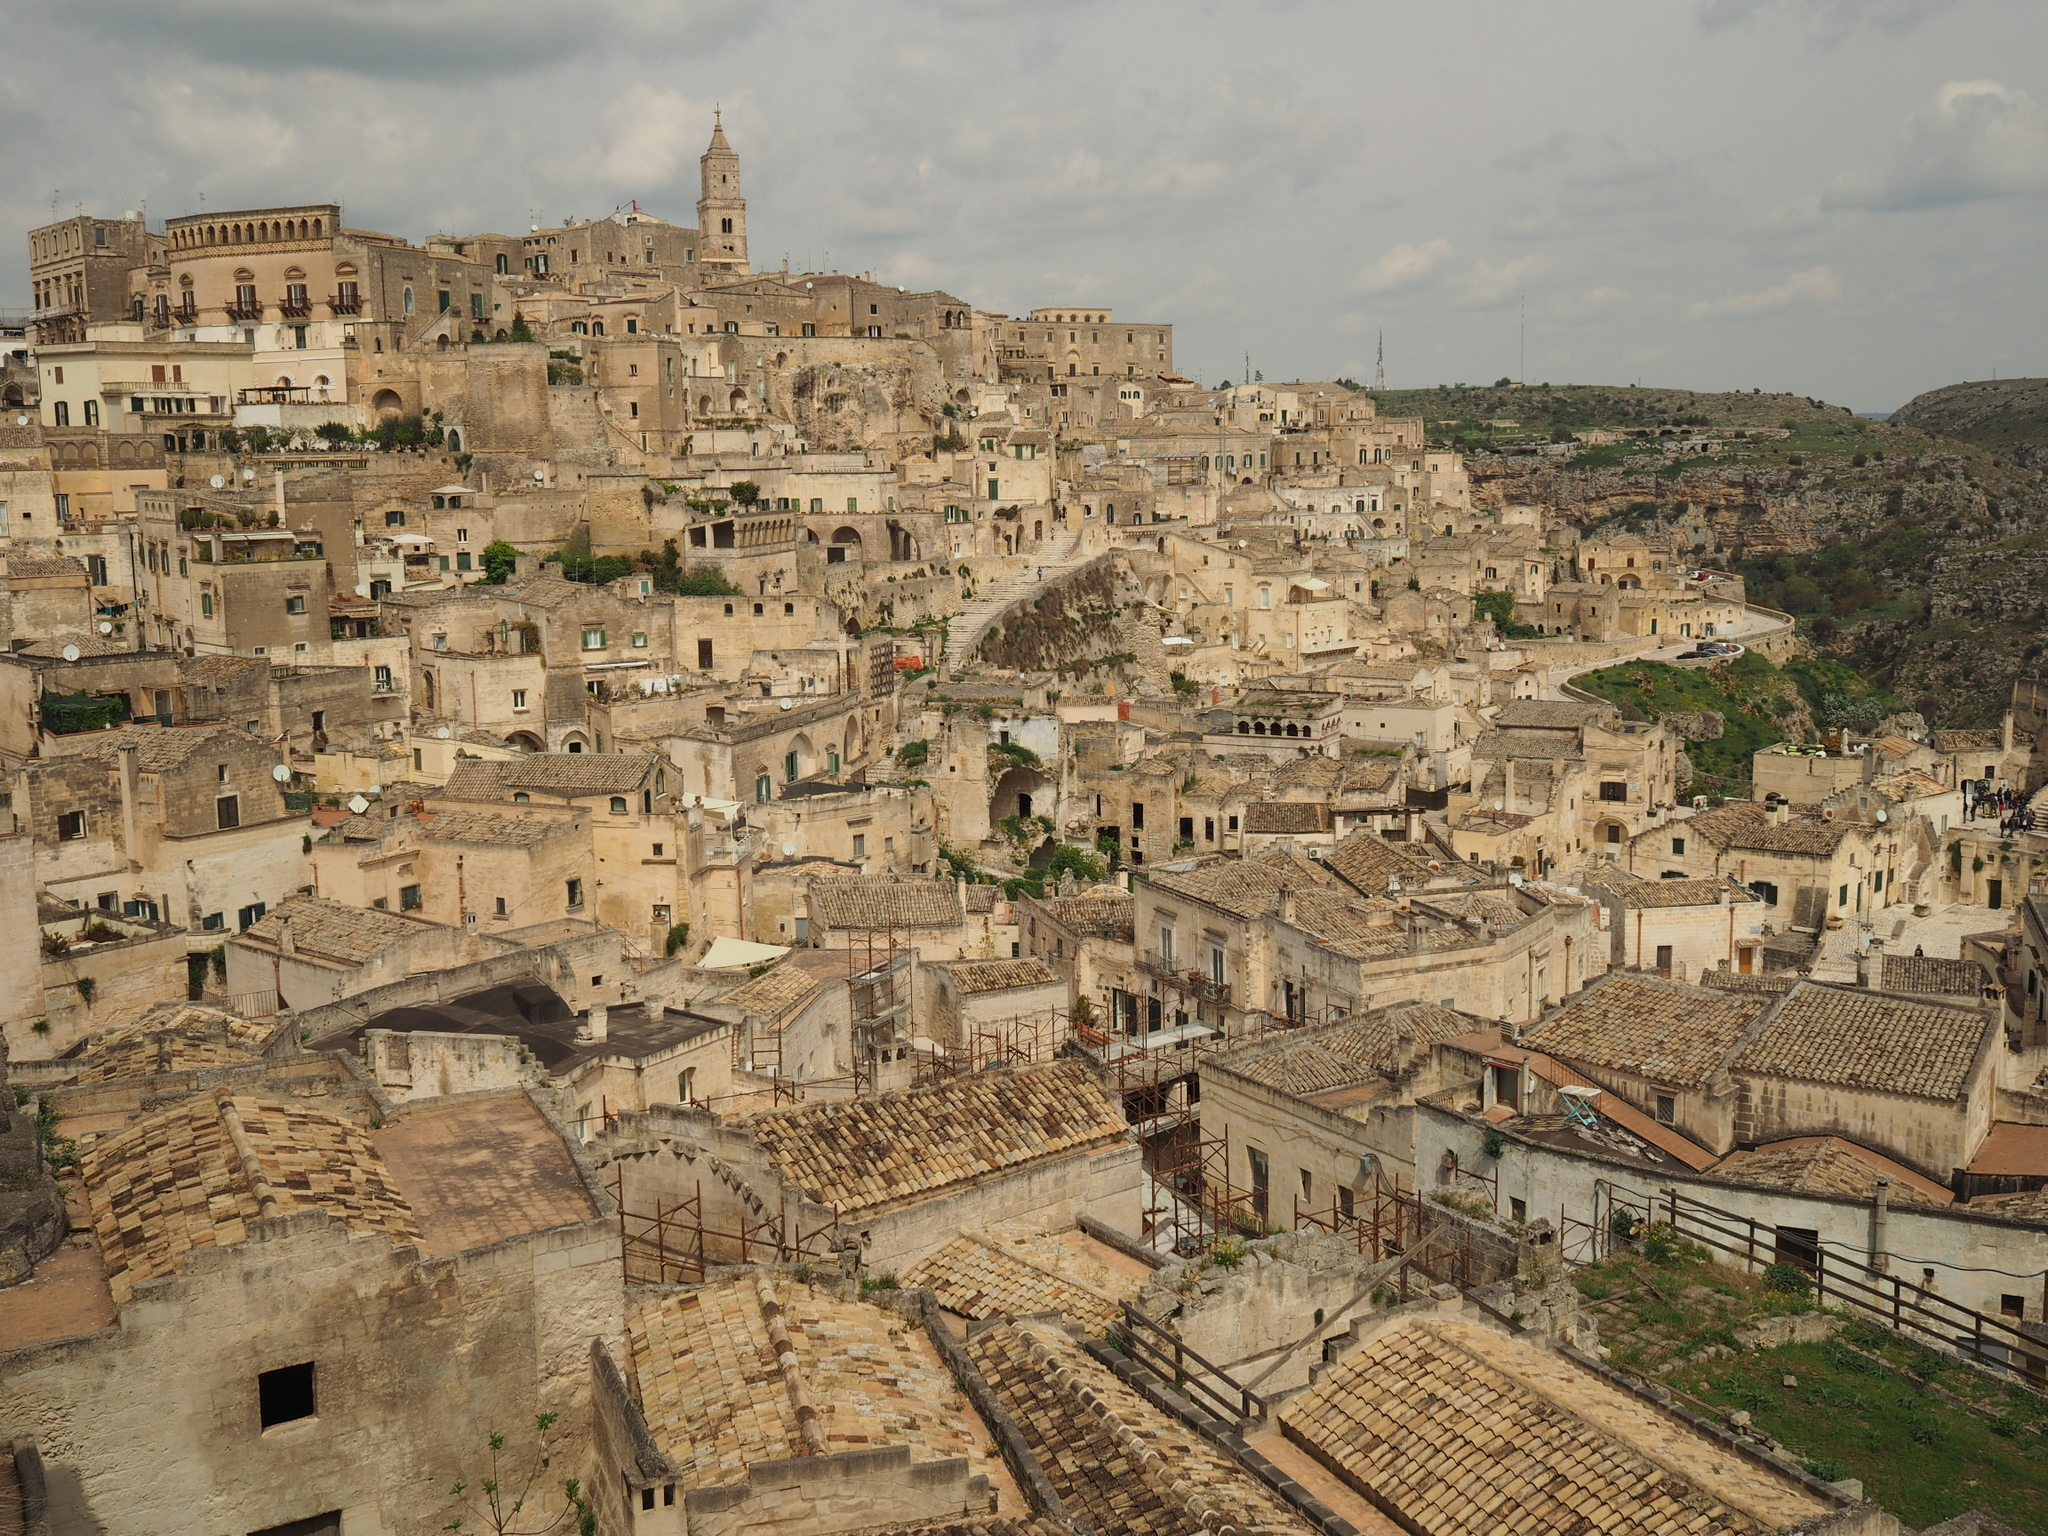 Matera at f/8. Sharp like old concrete and tile.